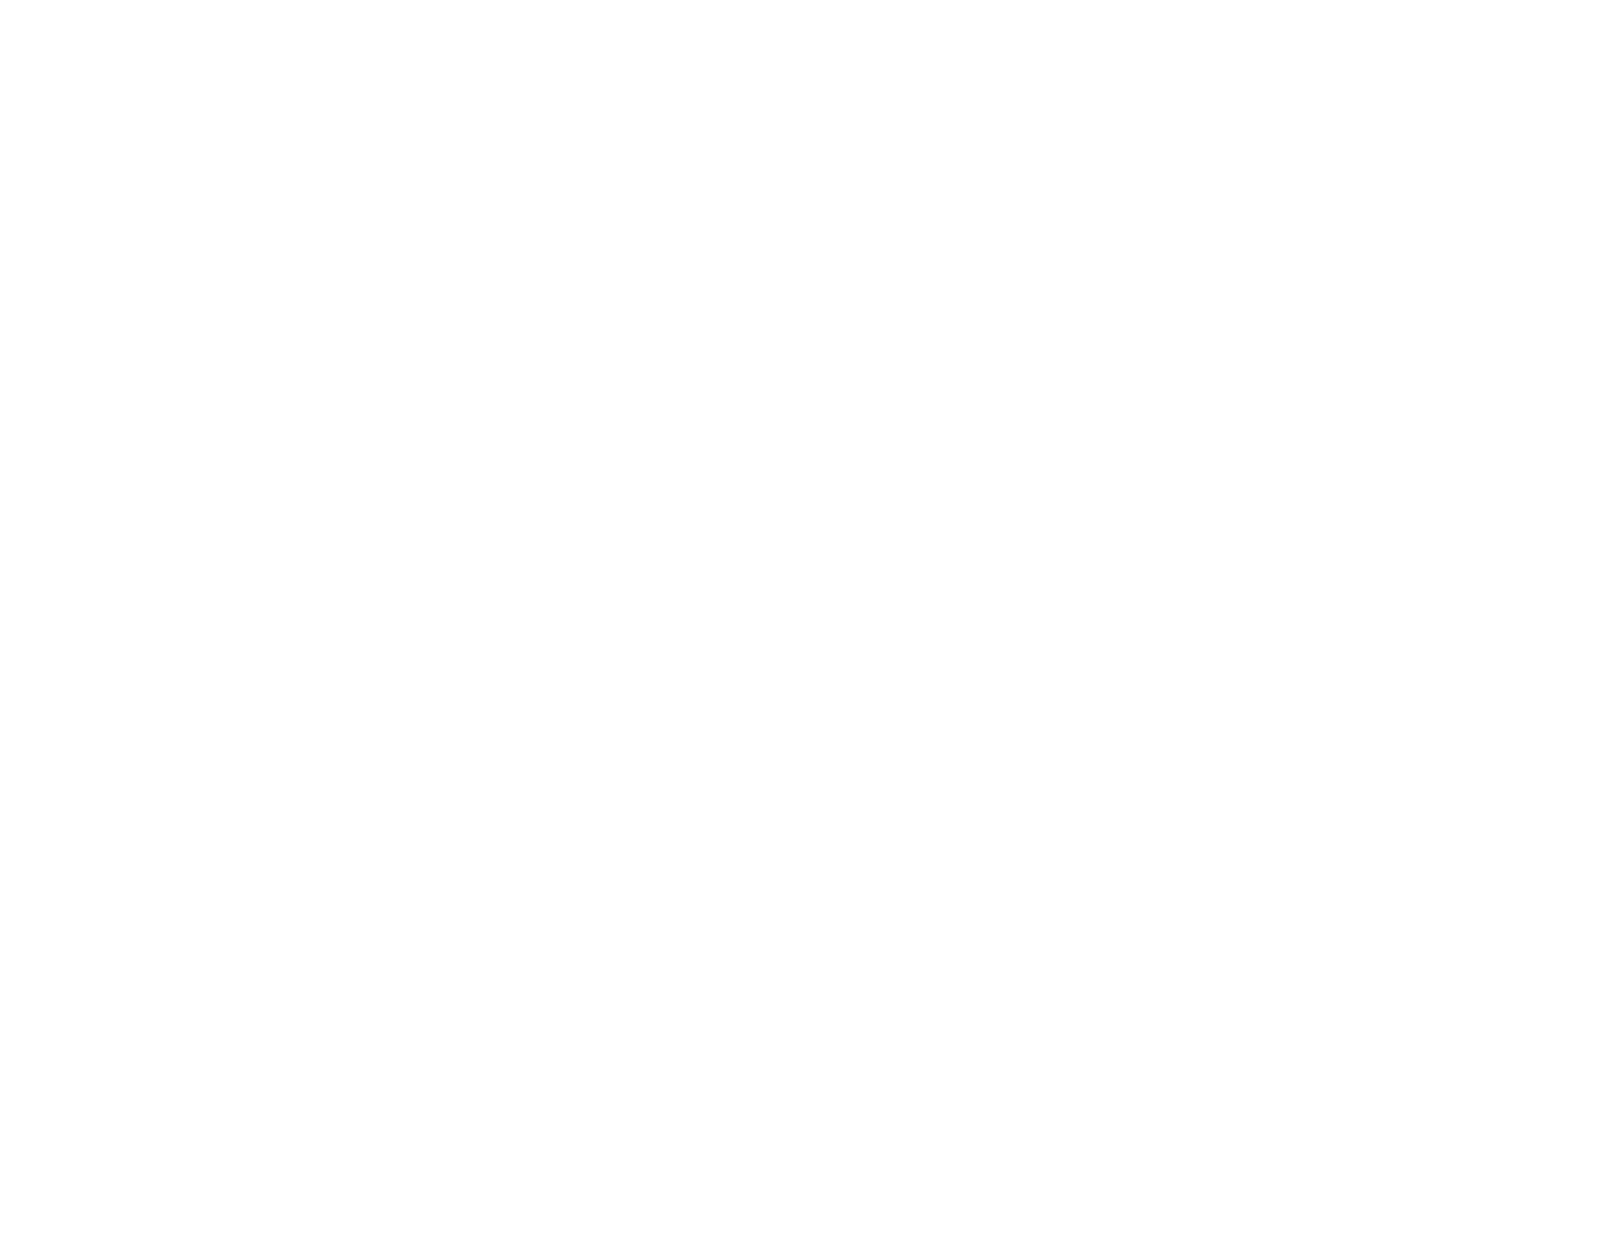 Software Advice Most Recommended for Integrated Risk Management Software Aug-21